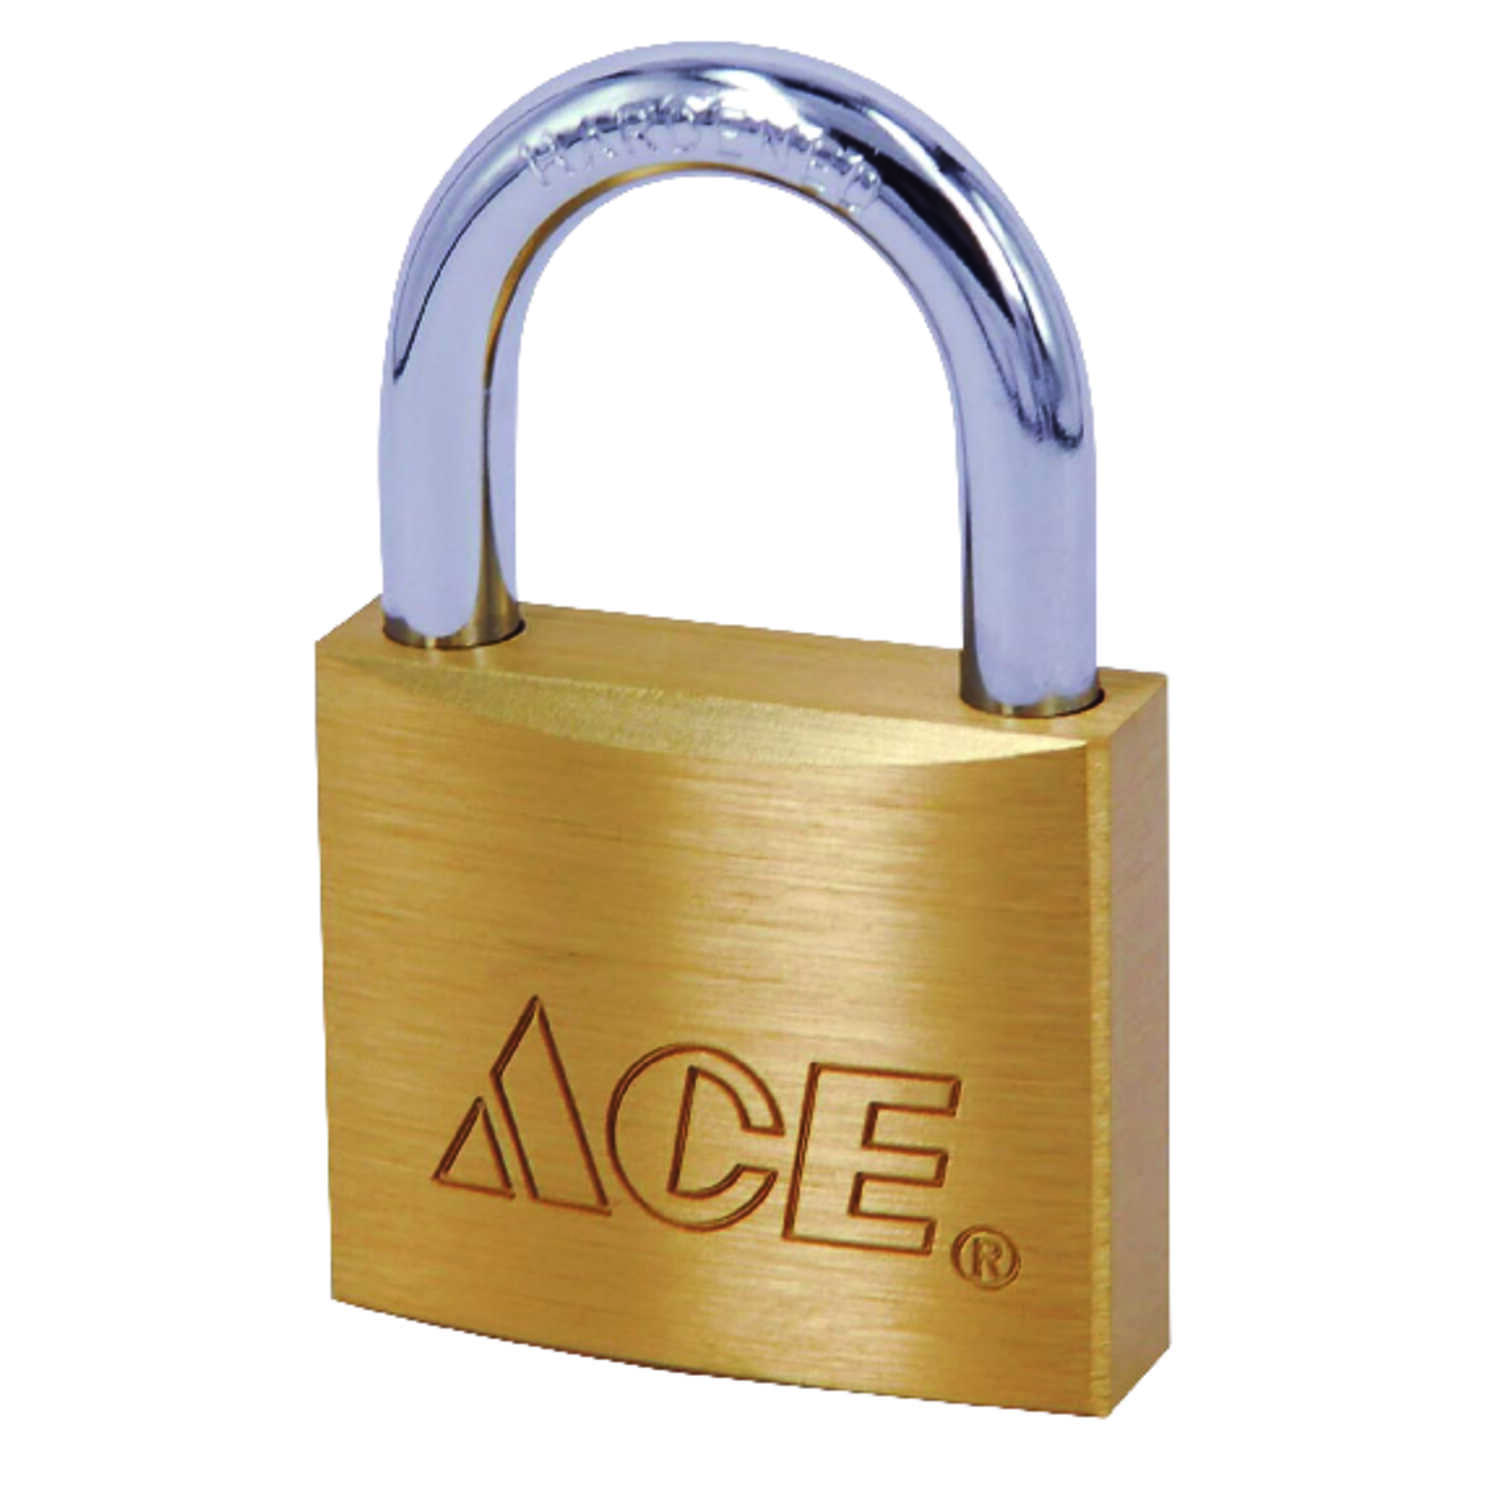 Ace  3/4 in. W x 7/16 in. L x 3/4 in. H Brass  Single Locking  Padlock  1 pk